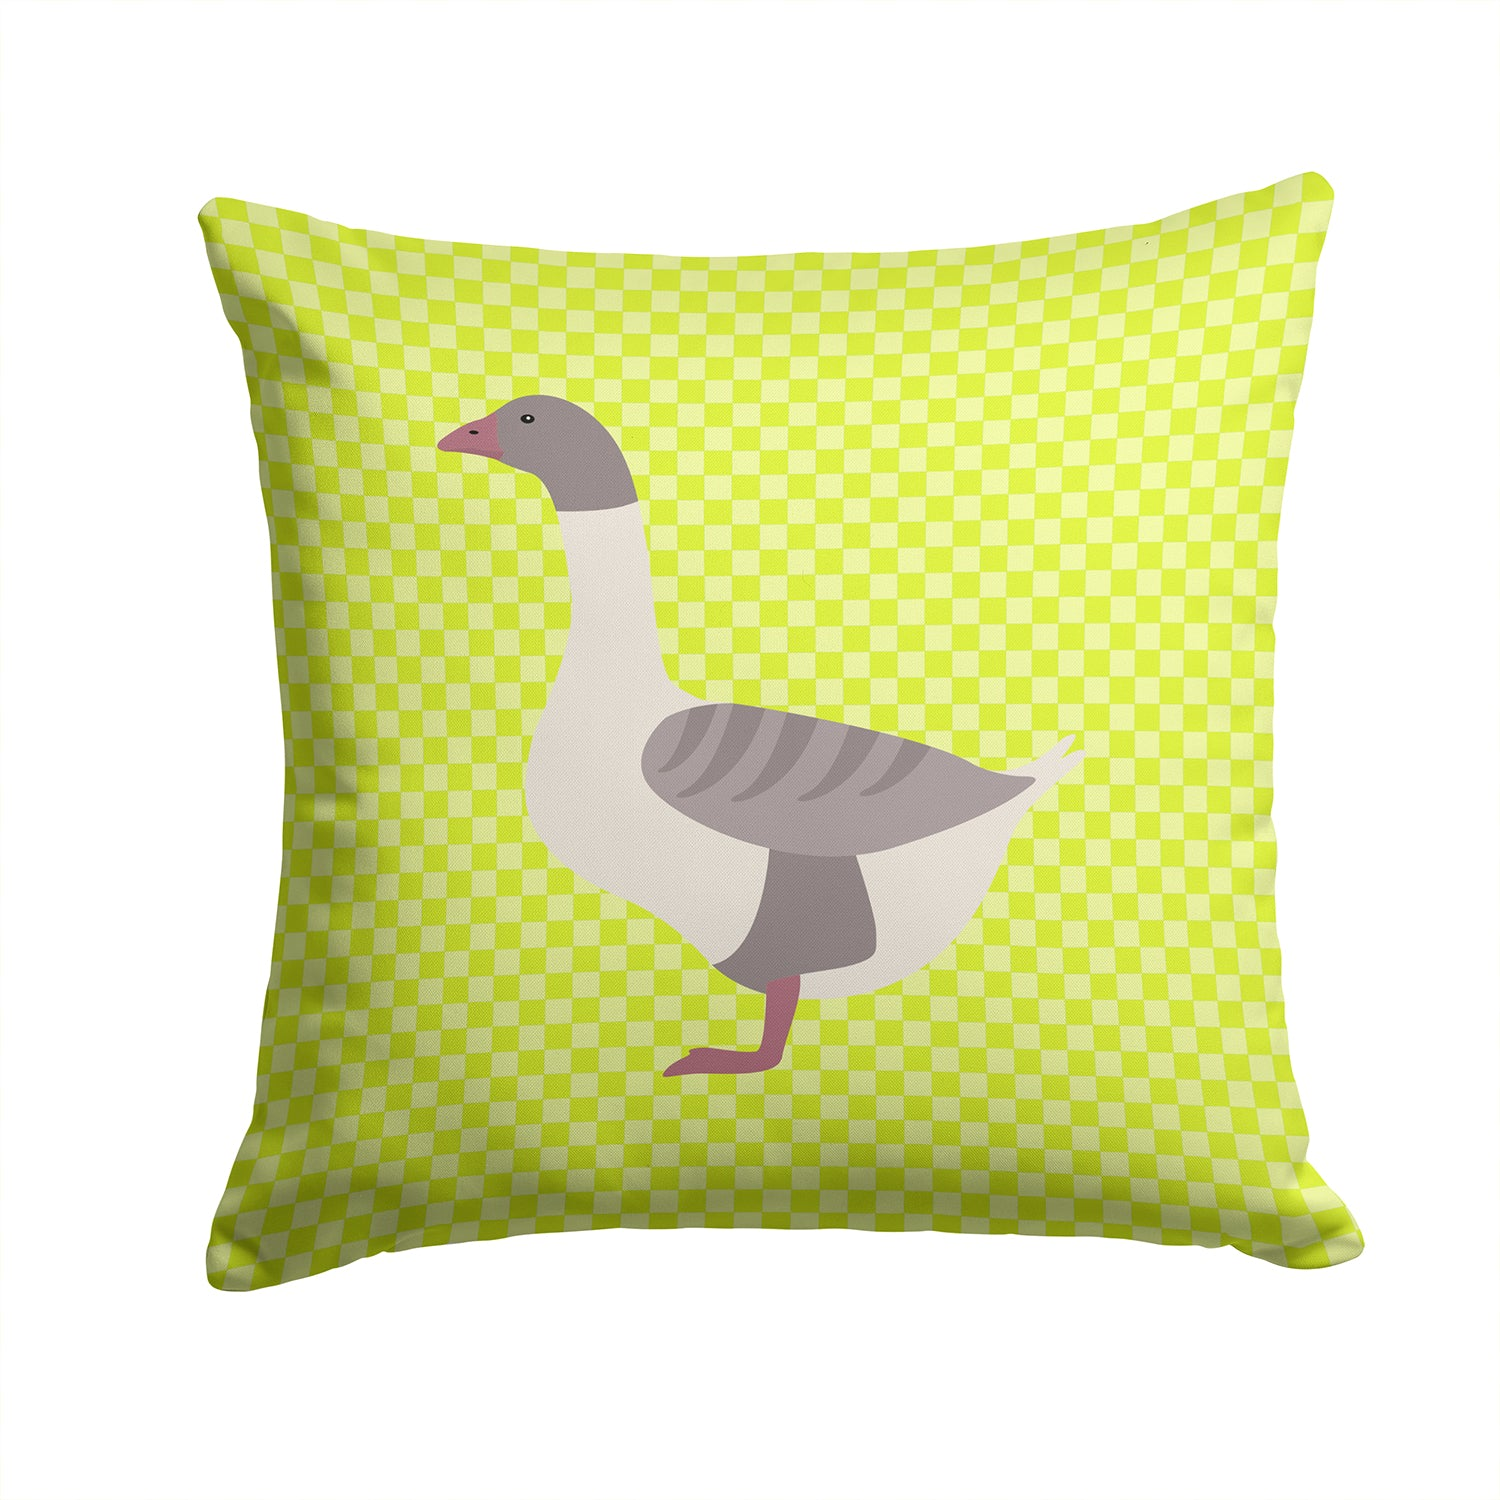 Buff Grey Back Goose Green Fabric Decorative Pillow BB7727PW1414 by Caroline's Treasures